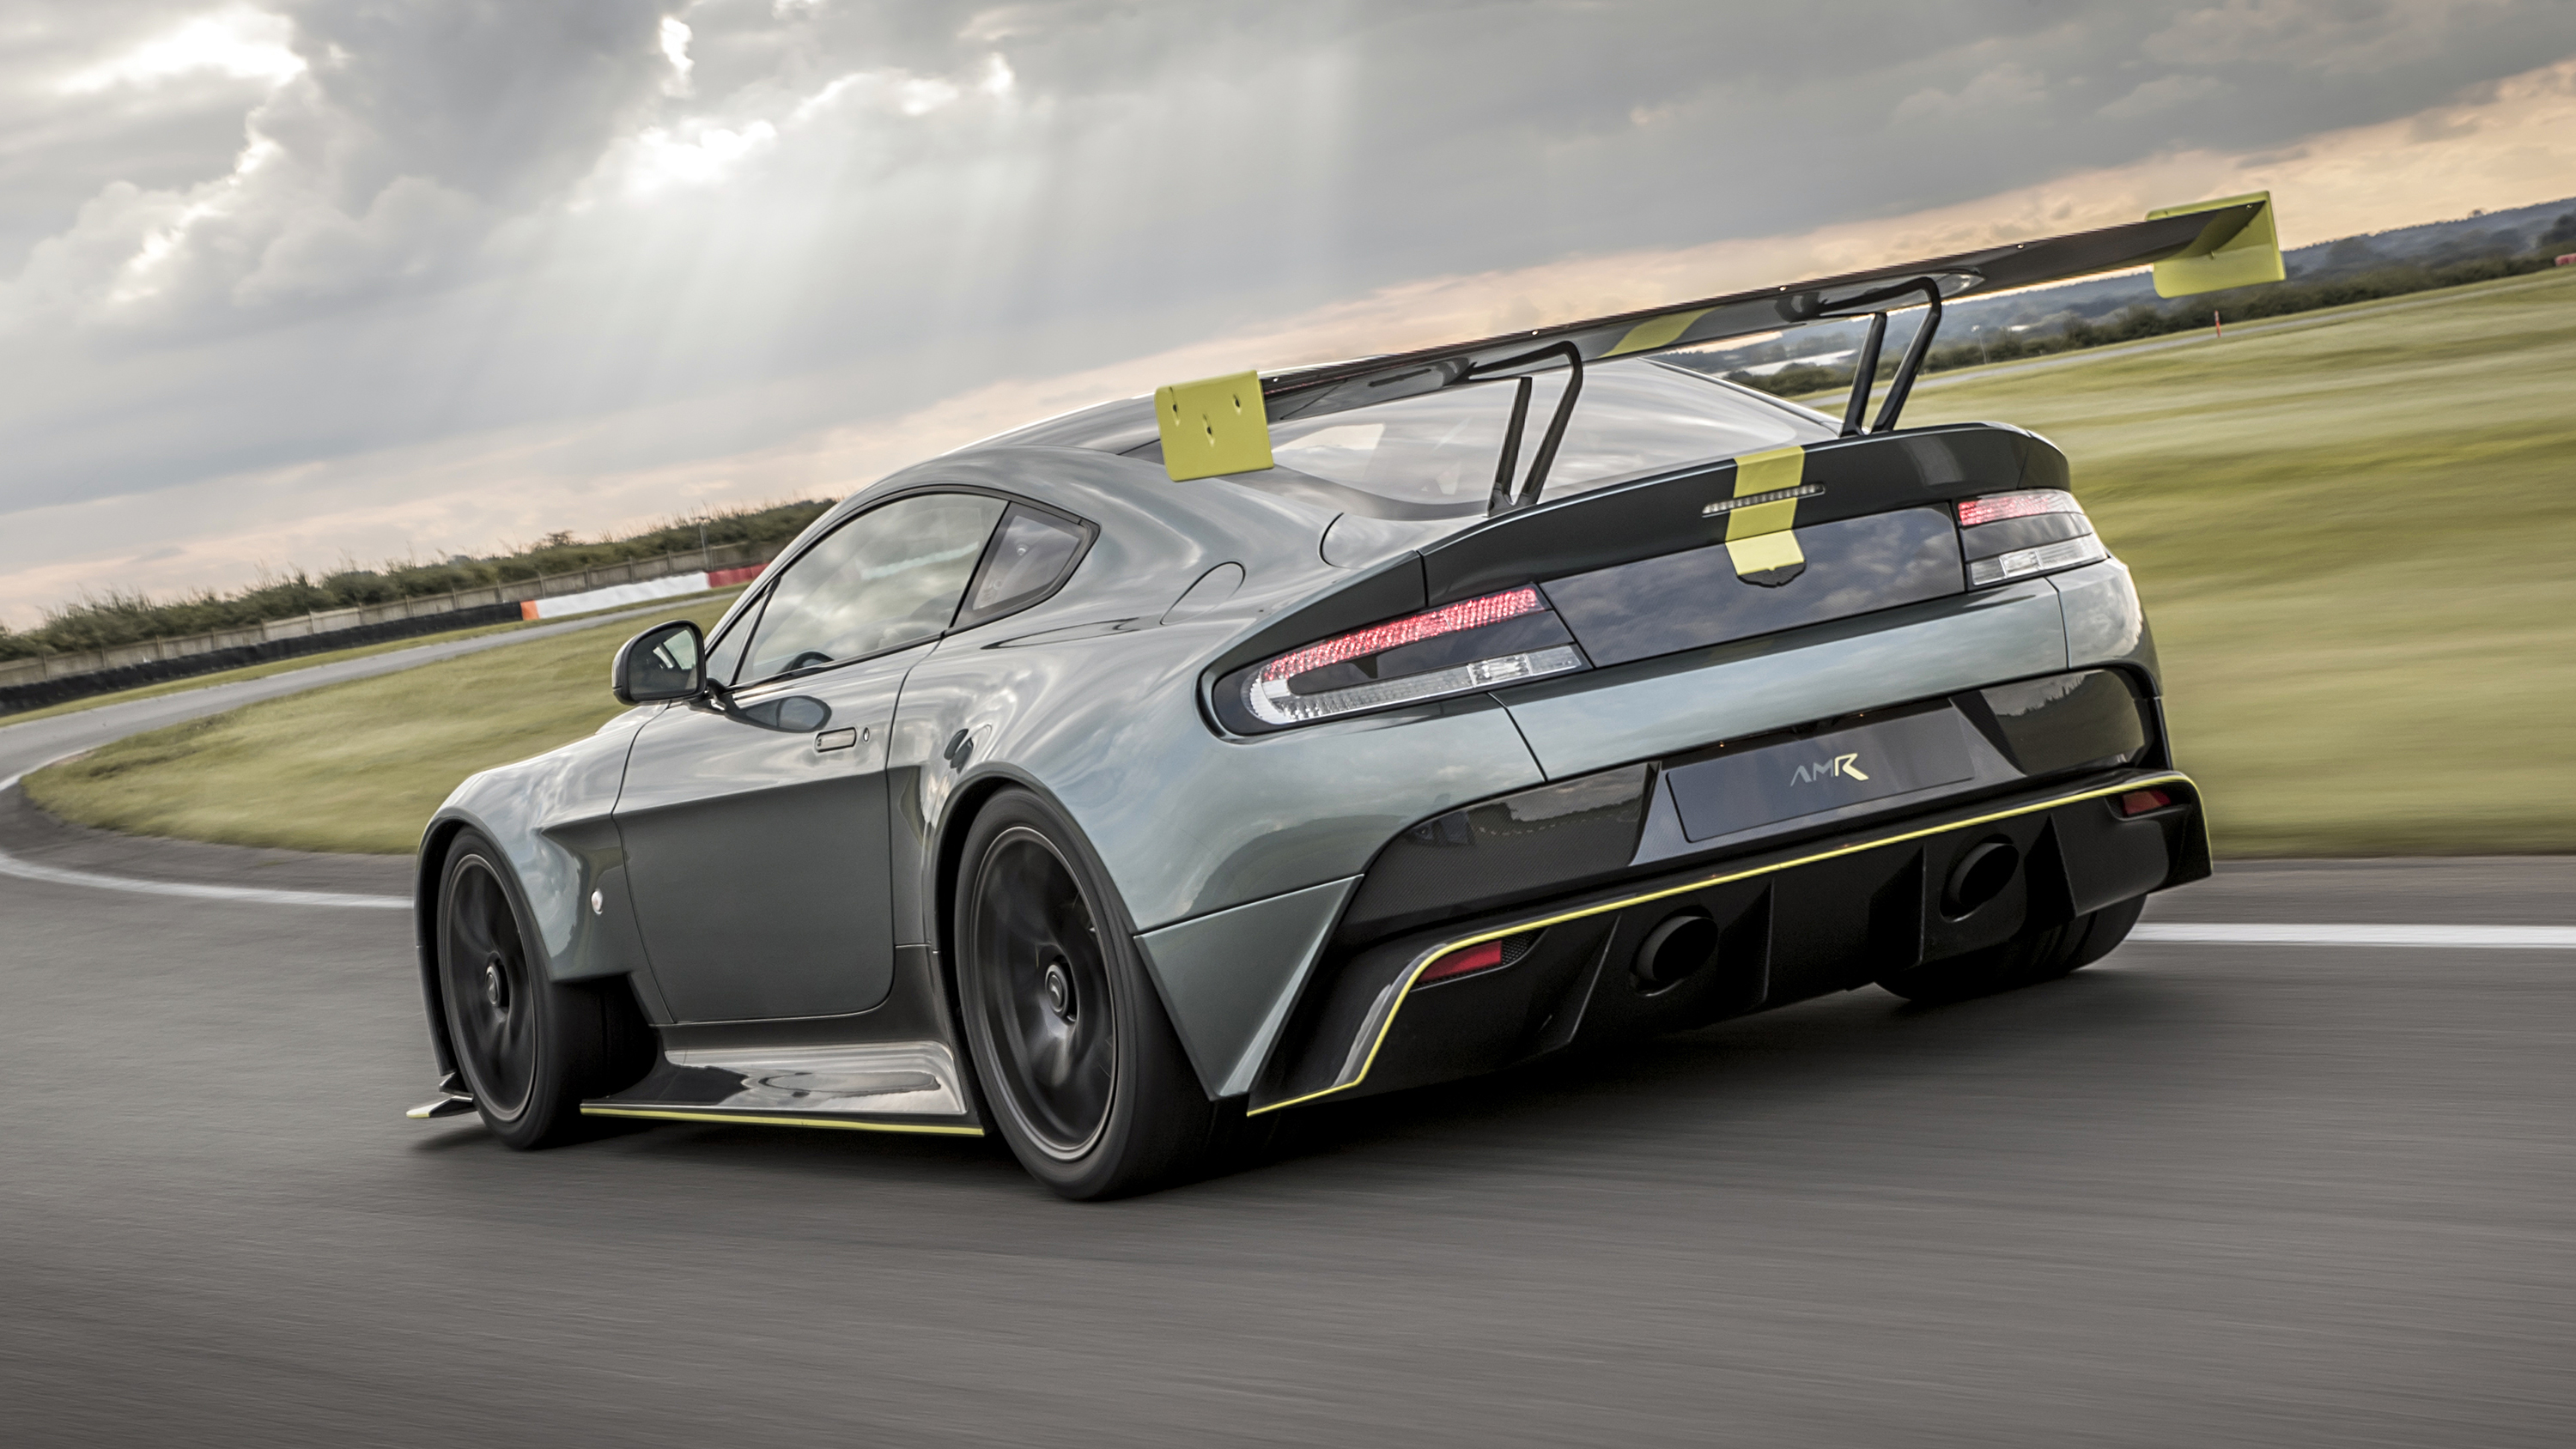 Aston Martin Vantage Review Amr Pro Track Special Driven Top Gear